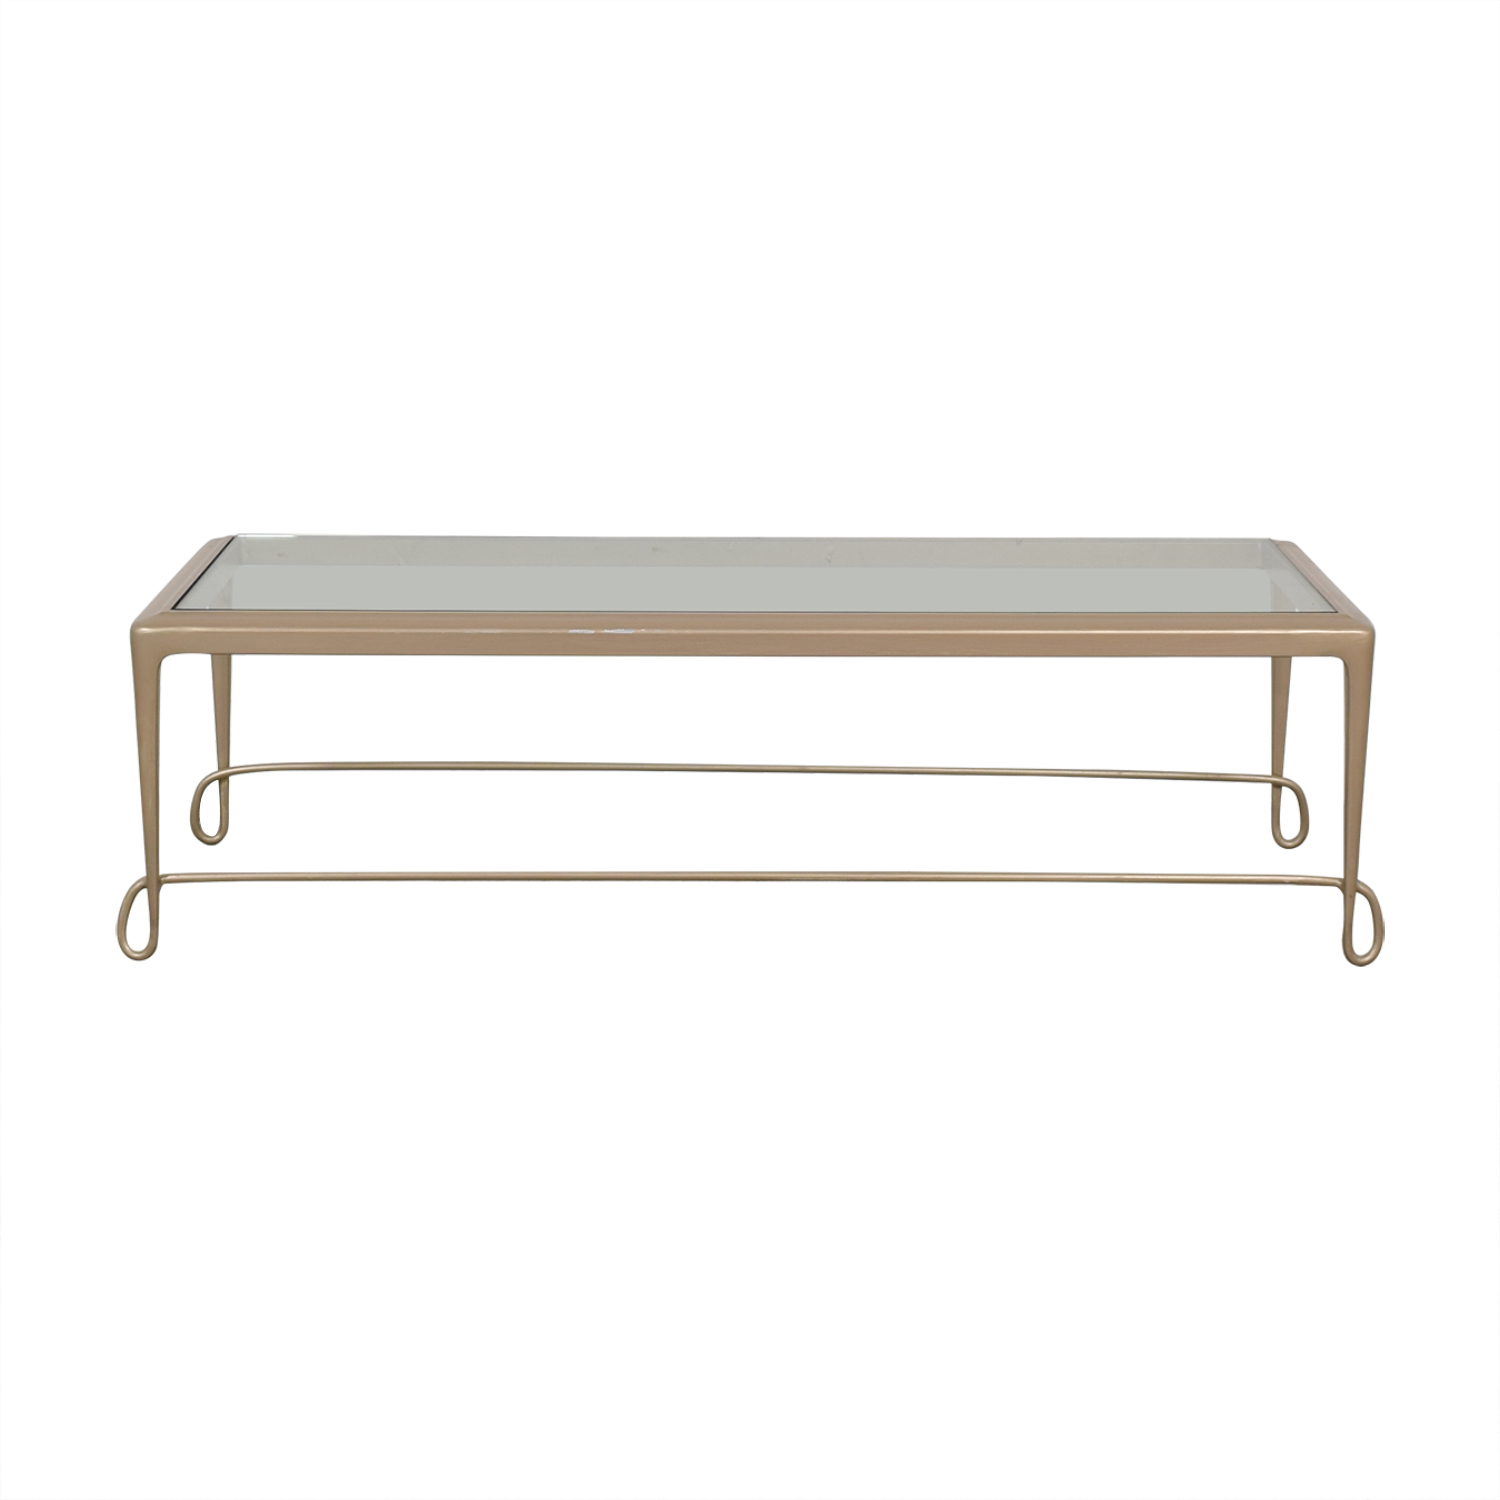 Barbara Barry Barbara Barry Glass Top Coffee Table price